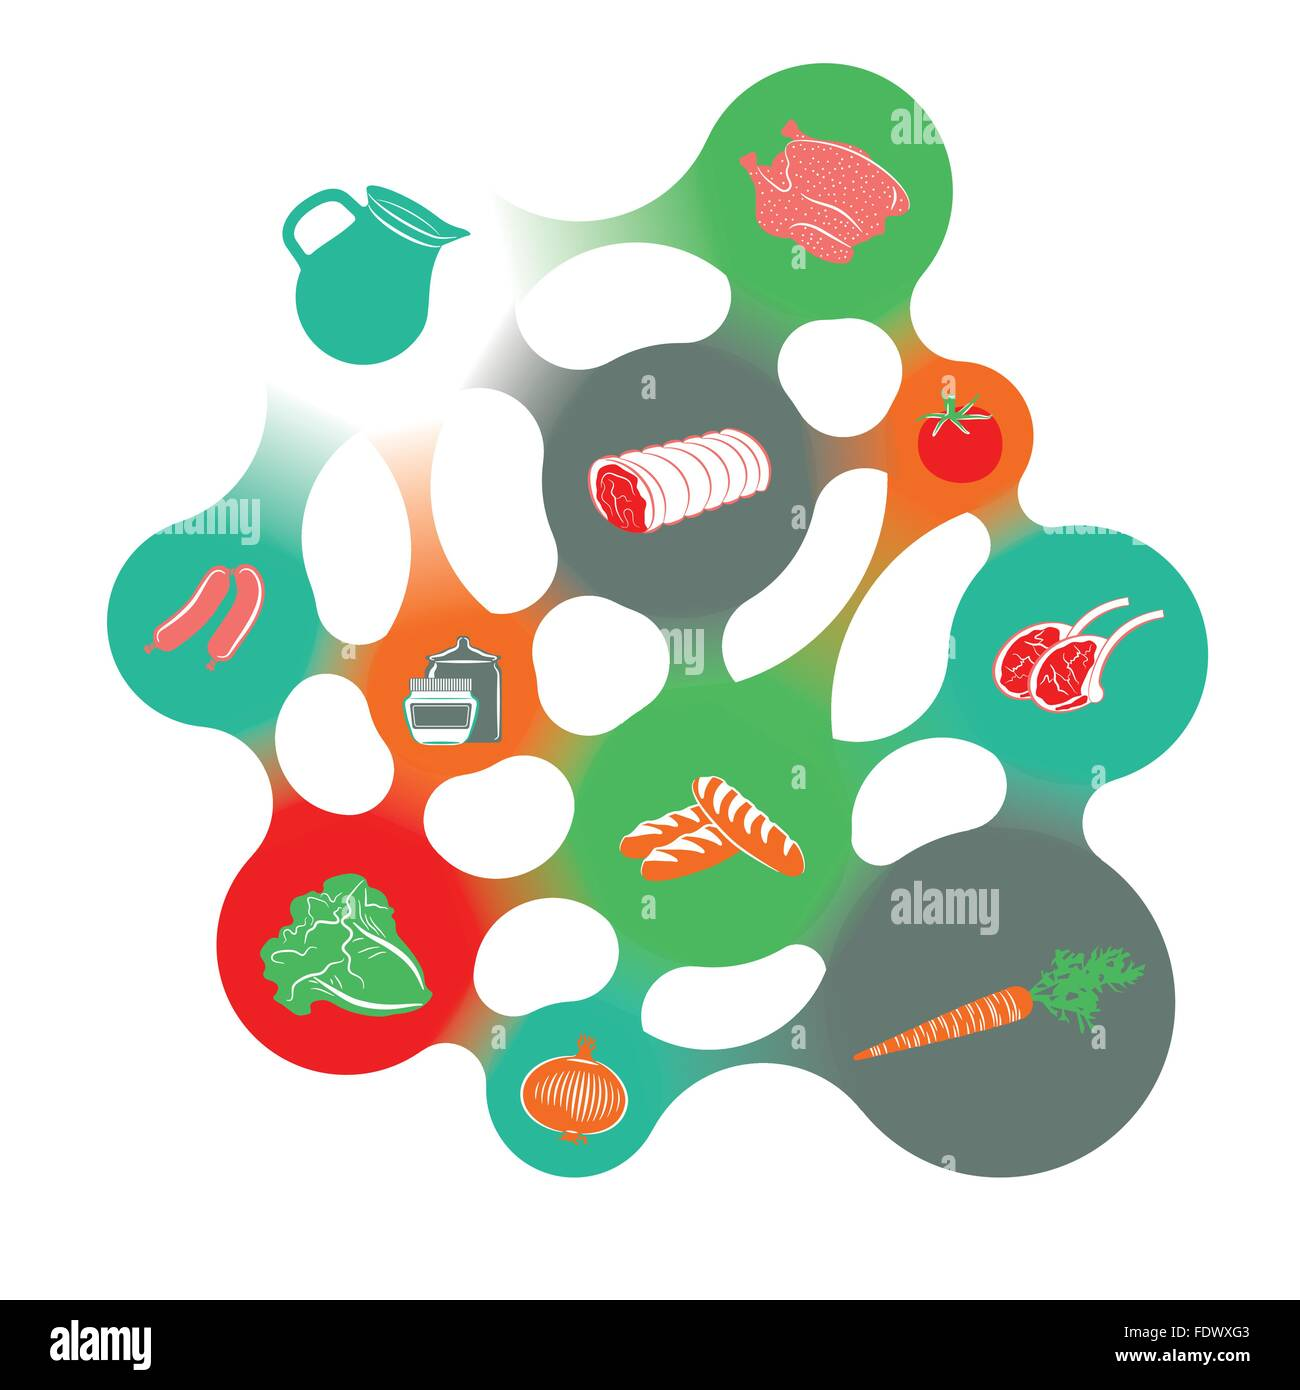 Food infographic in the shape of a colorful metaball structure. Stock Vector